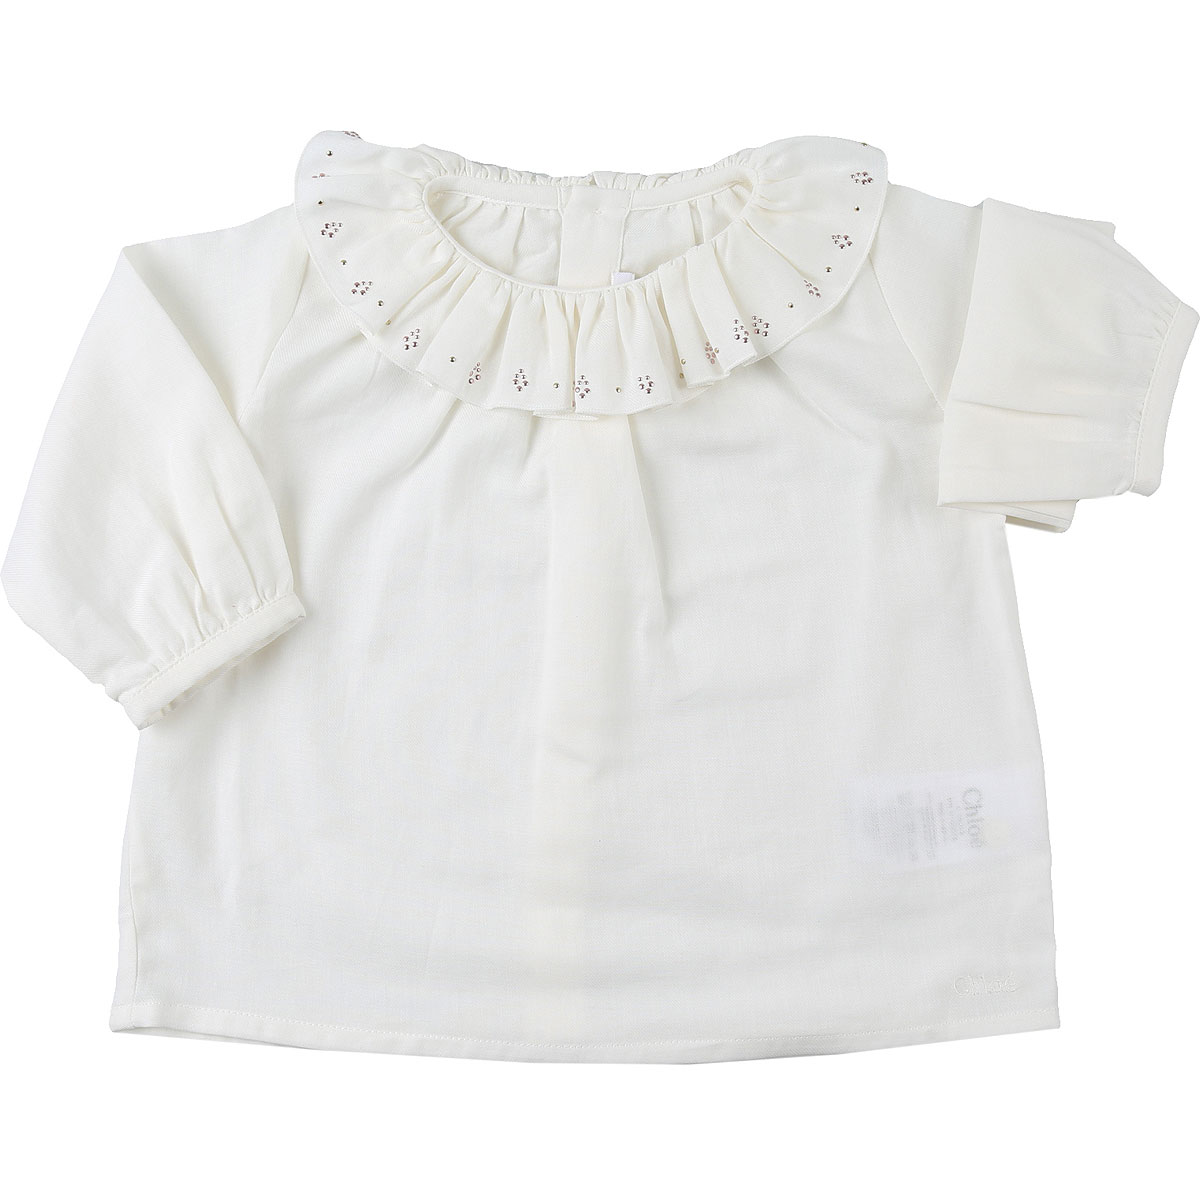 Chloe Baby Shirts for Girls On Sale, White, Cotton, 2019, 12M 3Y 6M